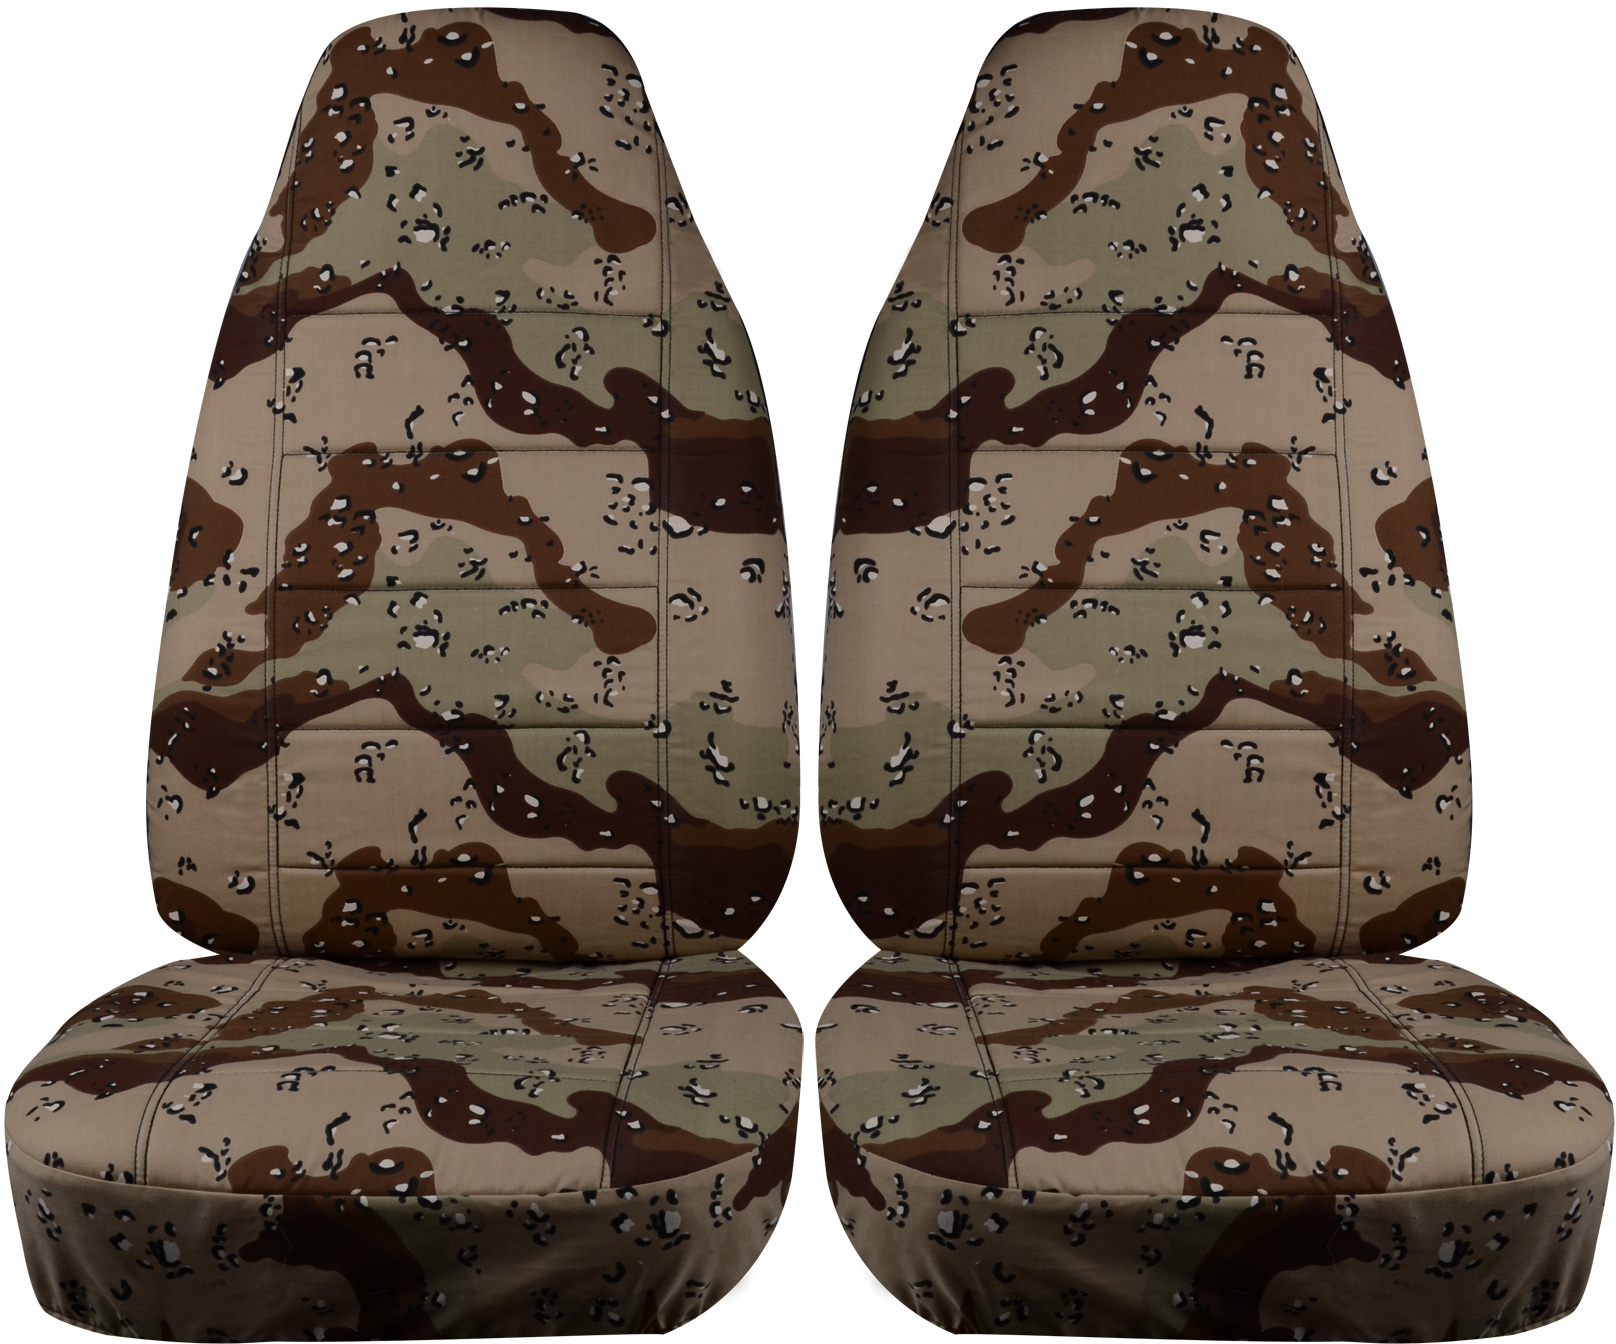 Totally Covers Fits 2004-2012 Ford Ranger//Mazda B-Series Camo Truck Seat Covers 60//40 Split Bench 16 Prints with Center Console//Armrest Cover: Blue Camouflage 2005 2006 2007 2008 2009 2010 2011